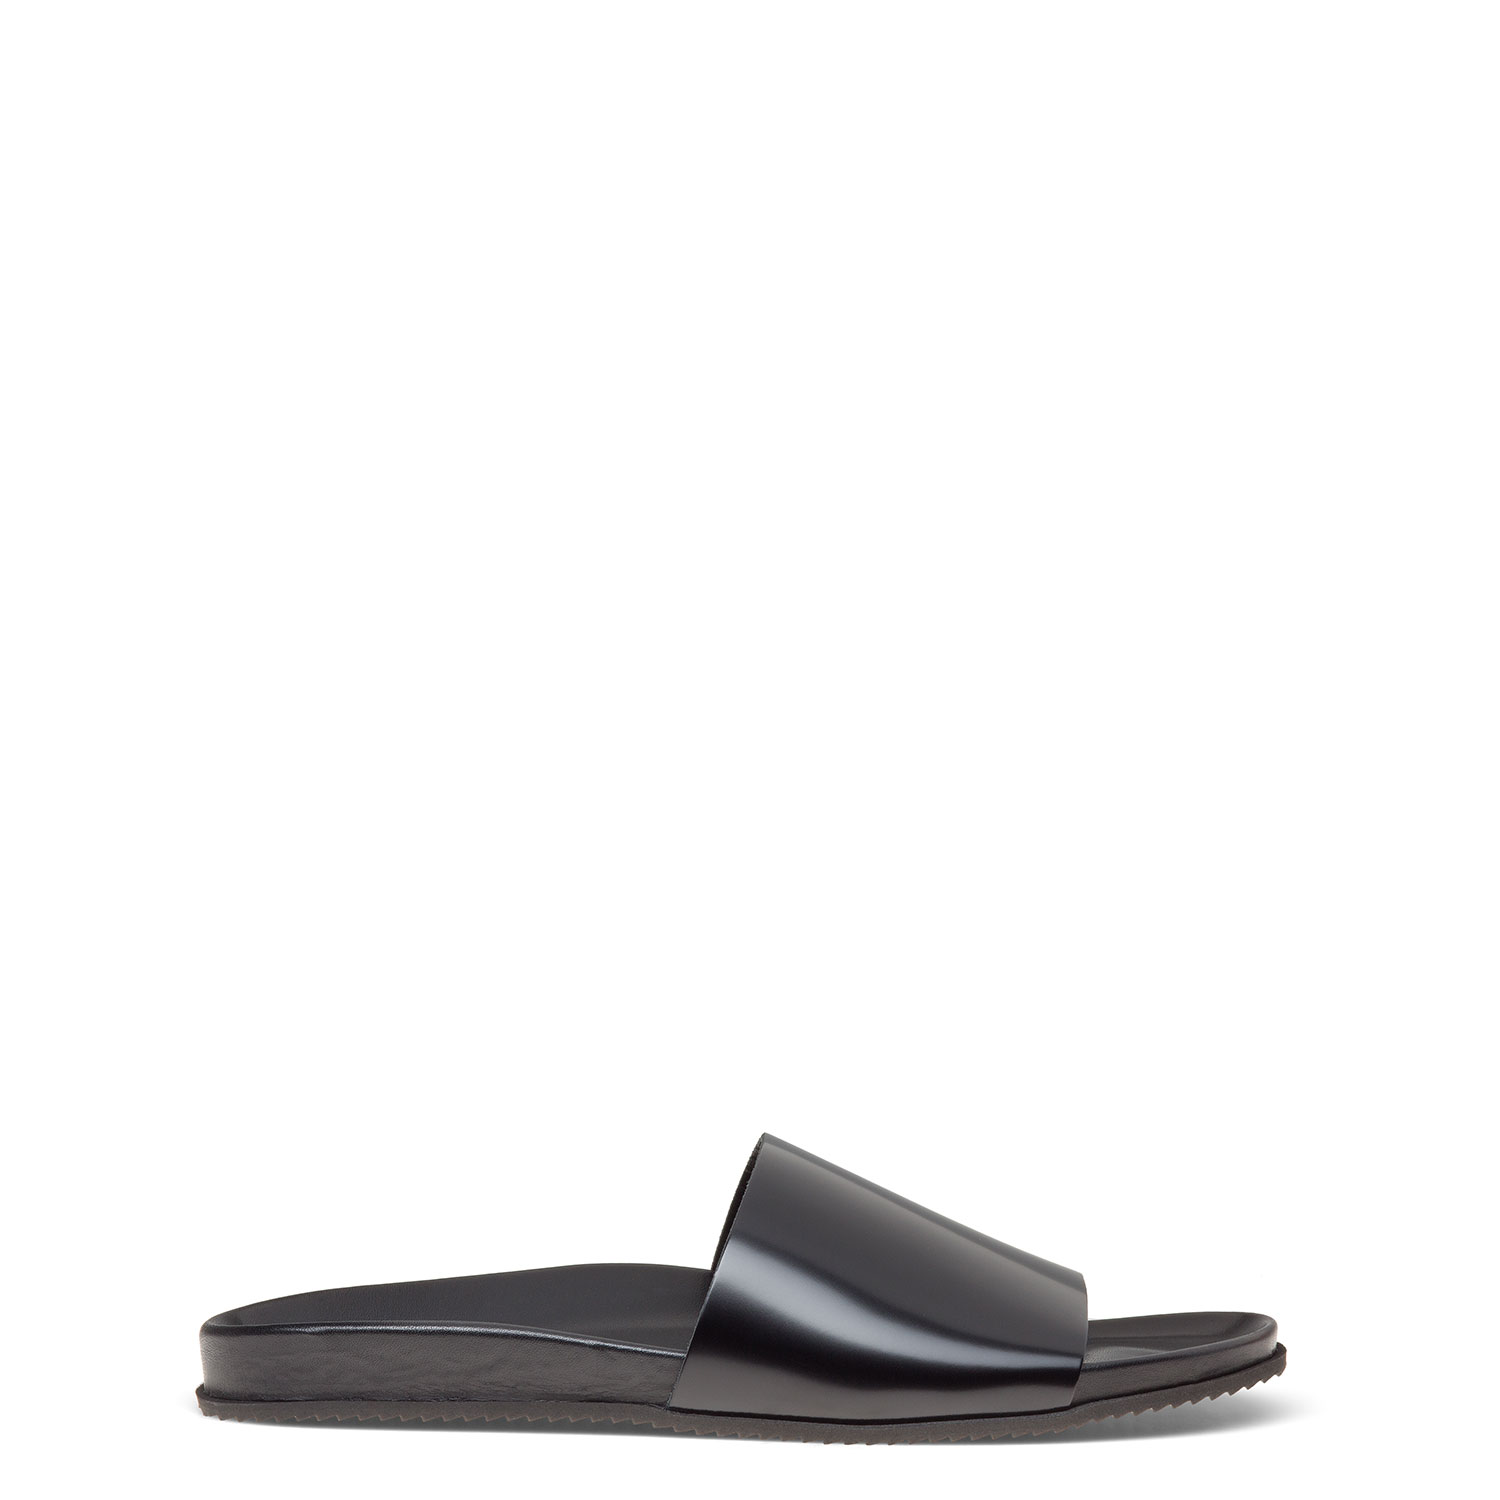 Men's sandals CARLO PAZOLINI VA-X8962-1